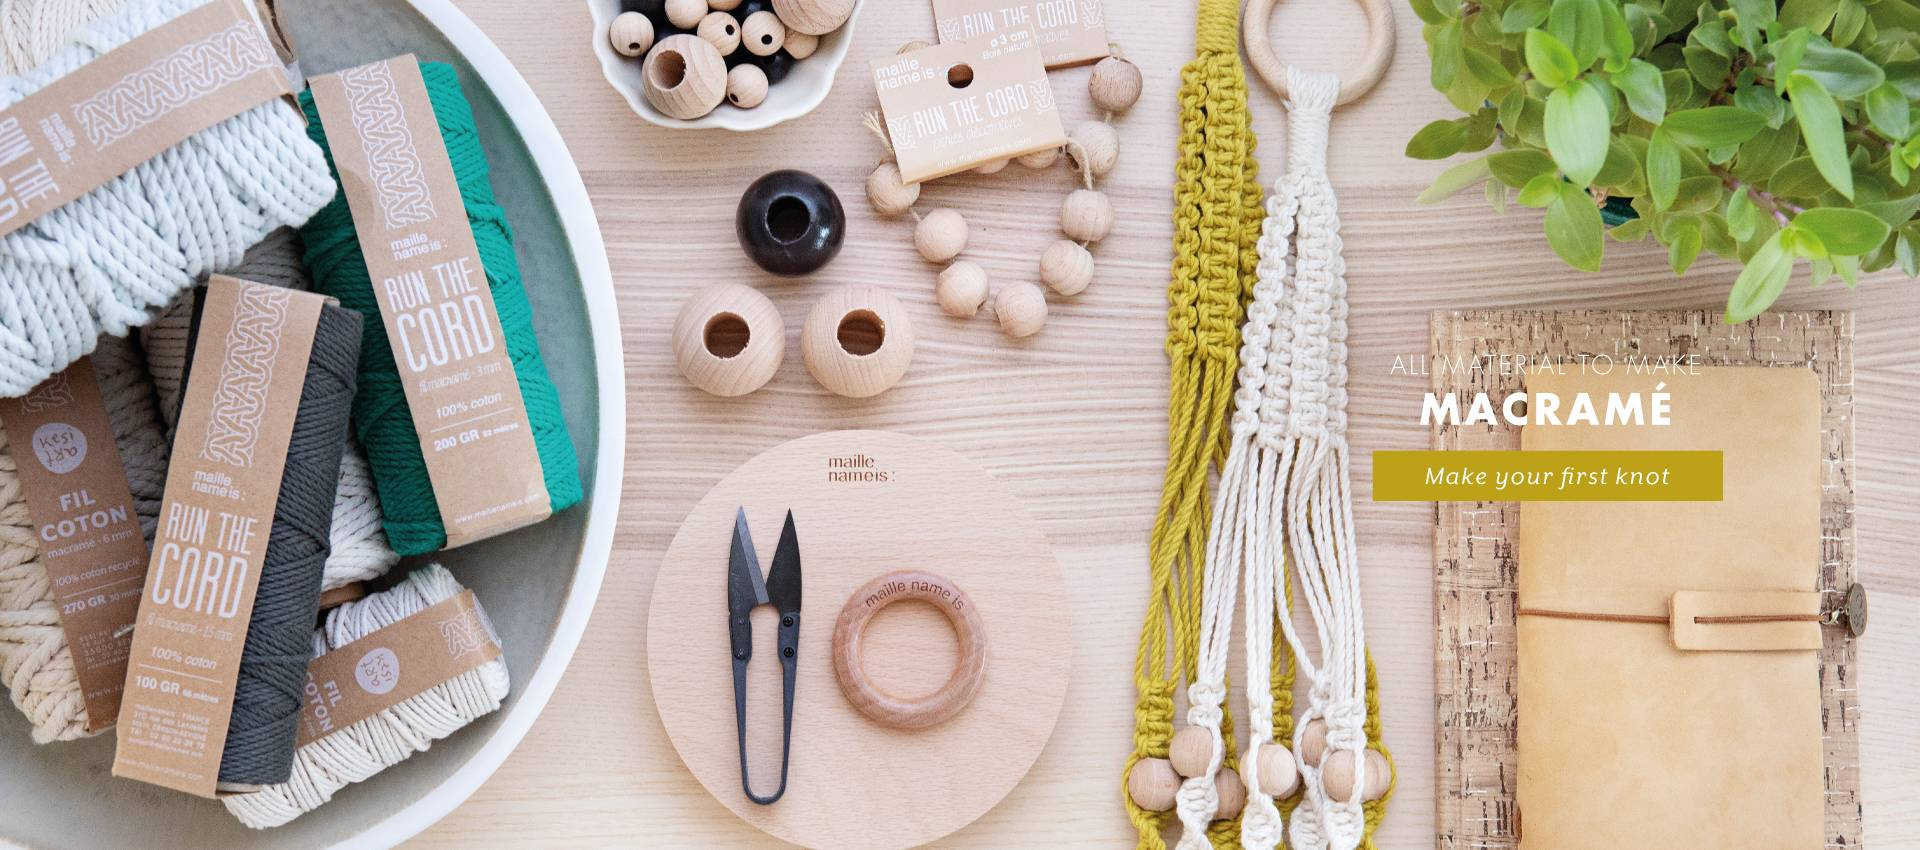 All supplies for Macrame are available online at Kesi'Art!